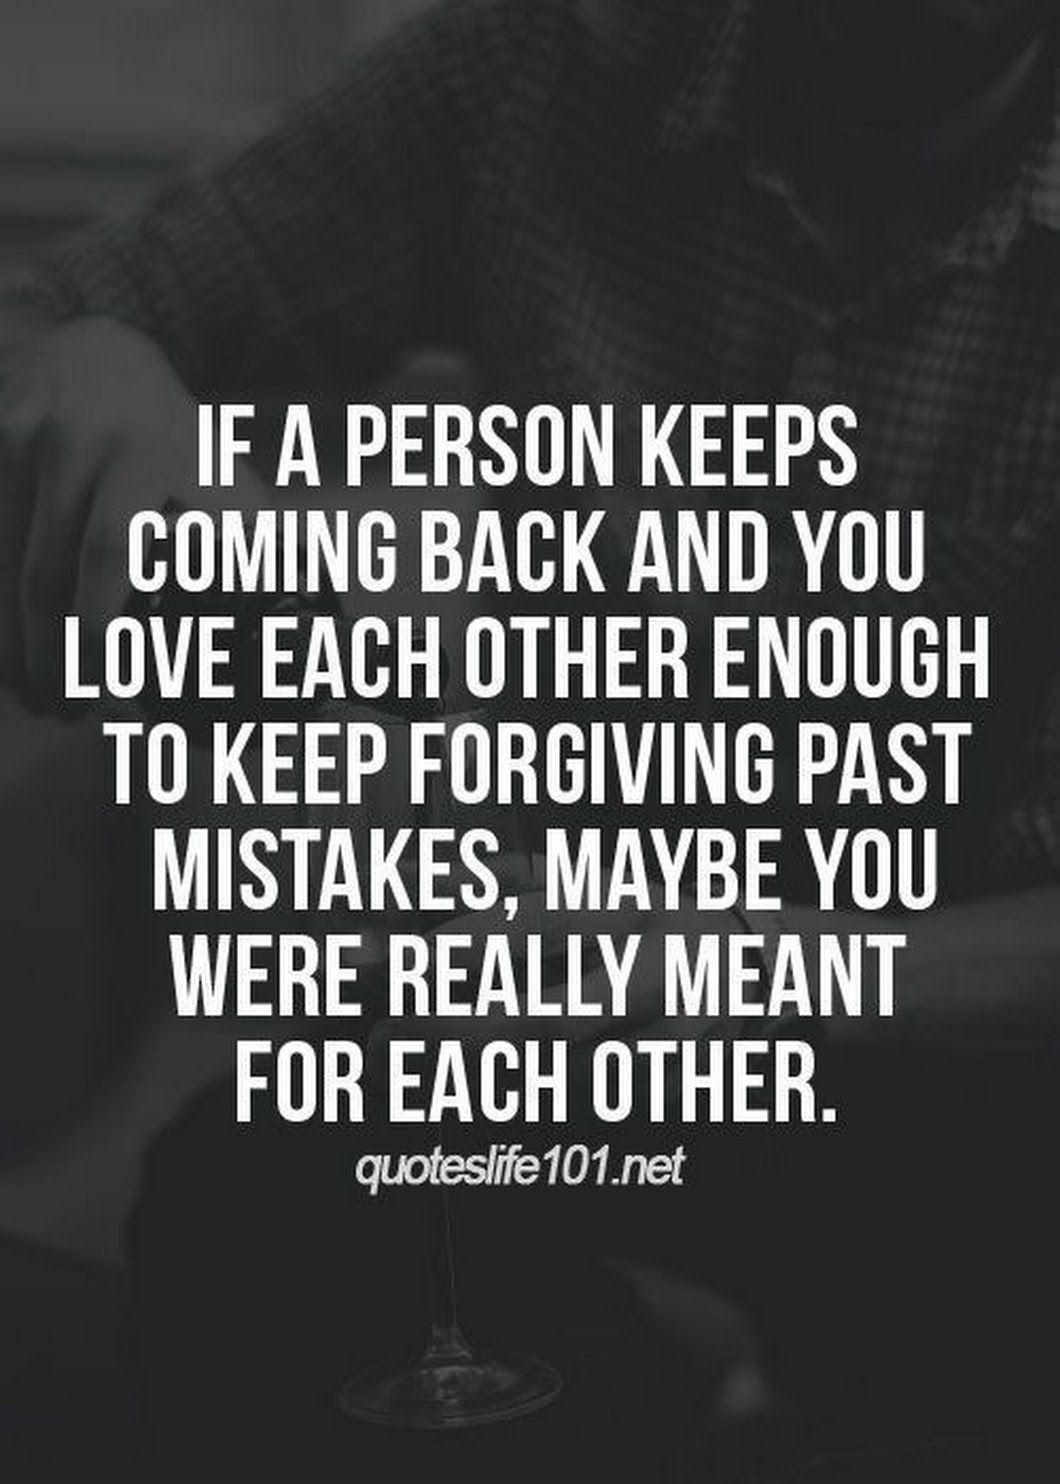 Relationship Quotes Google Quotes And Other Things